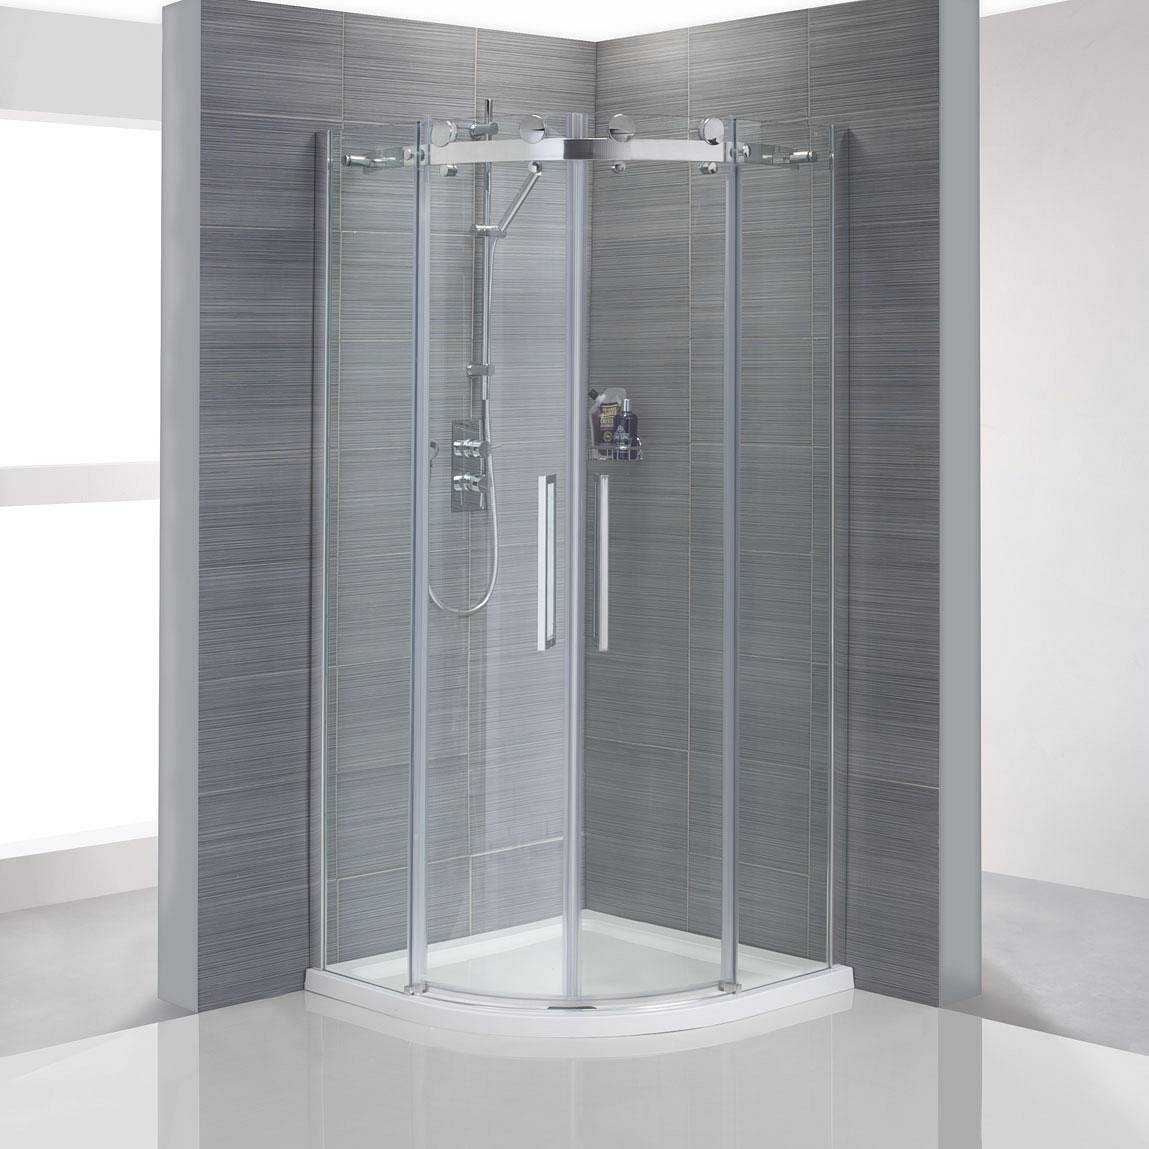 Marvelous Best Quadrant Shower Enclosure Part - 1: Sloegrin Frameless Quadrant Shower Enclosure